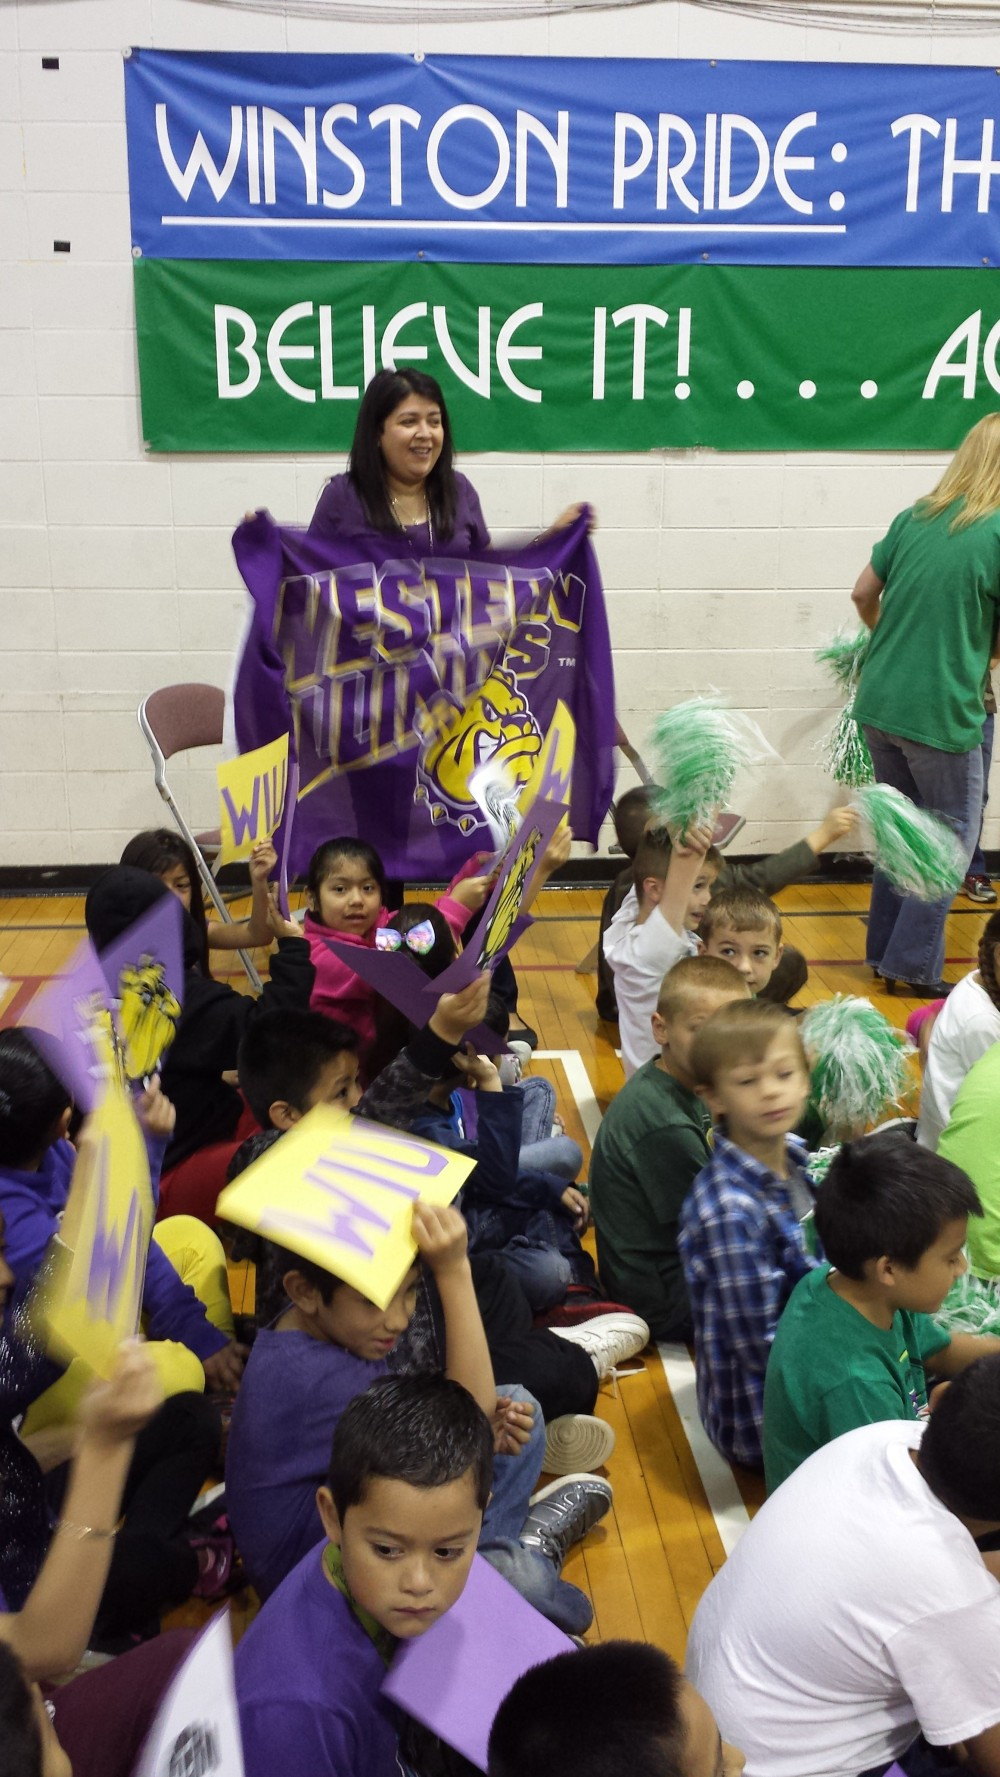 Sandy Rywelski holds up WIU flag next to her class.